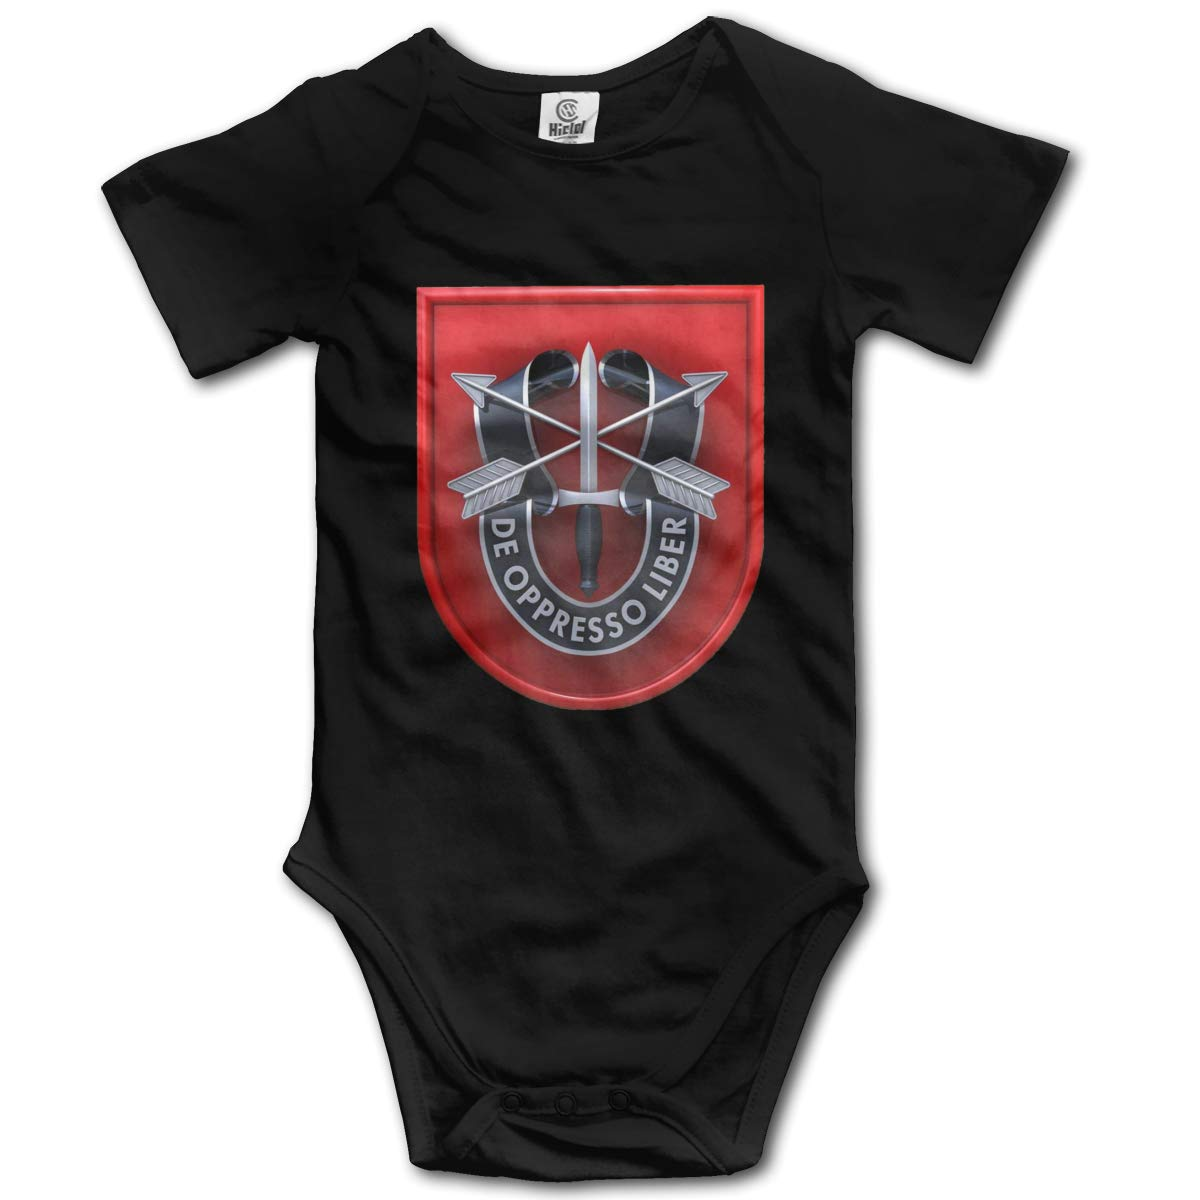 Coollifea 7th Special Forces Group Baby Romper 0-18 Months Newborn Baby Girls Boys Layette Rompers Black